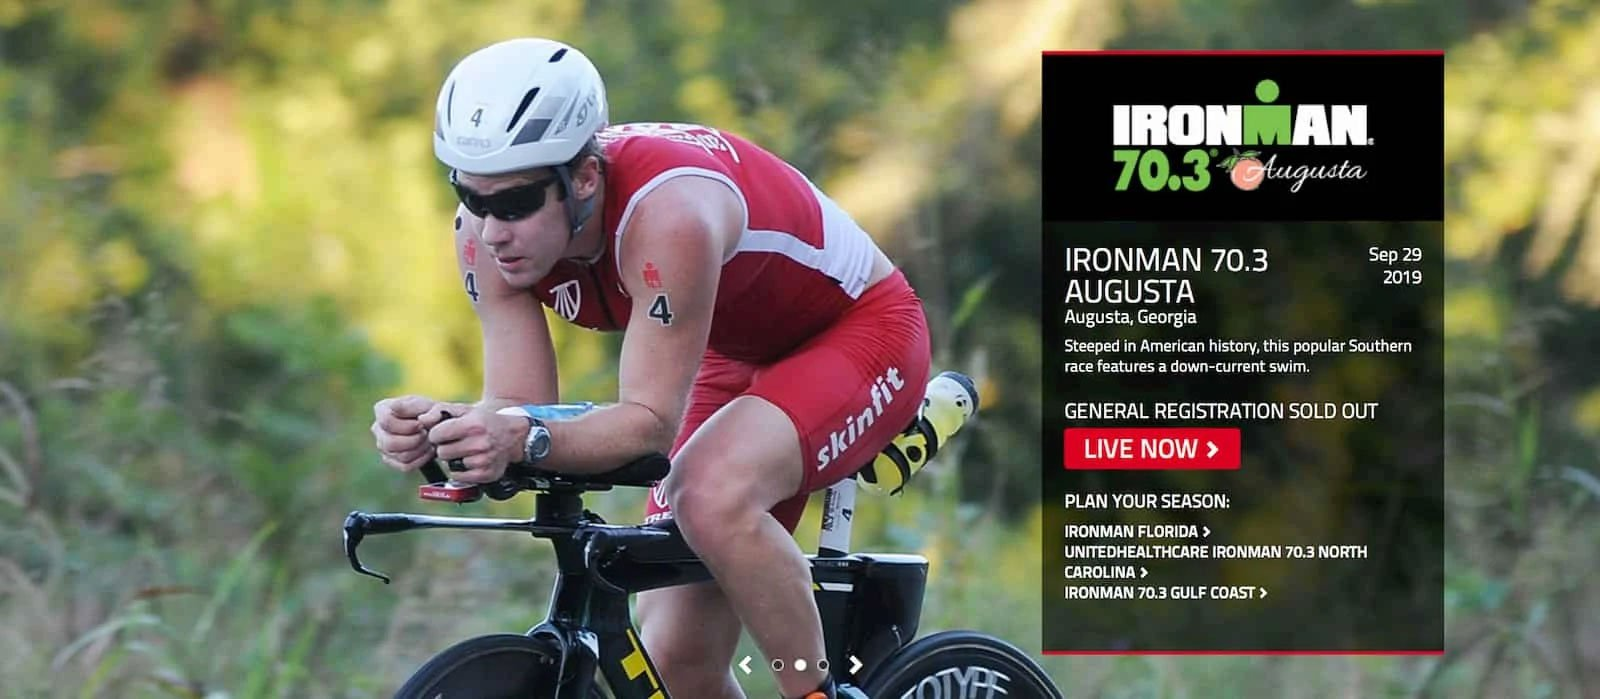 Portable Services Joins Support of IronMan Augusta